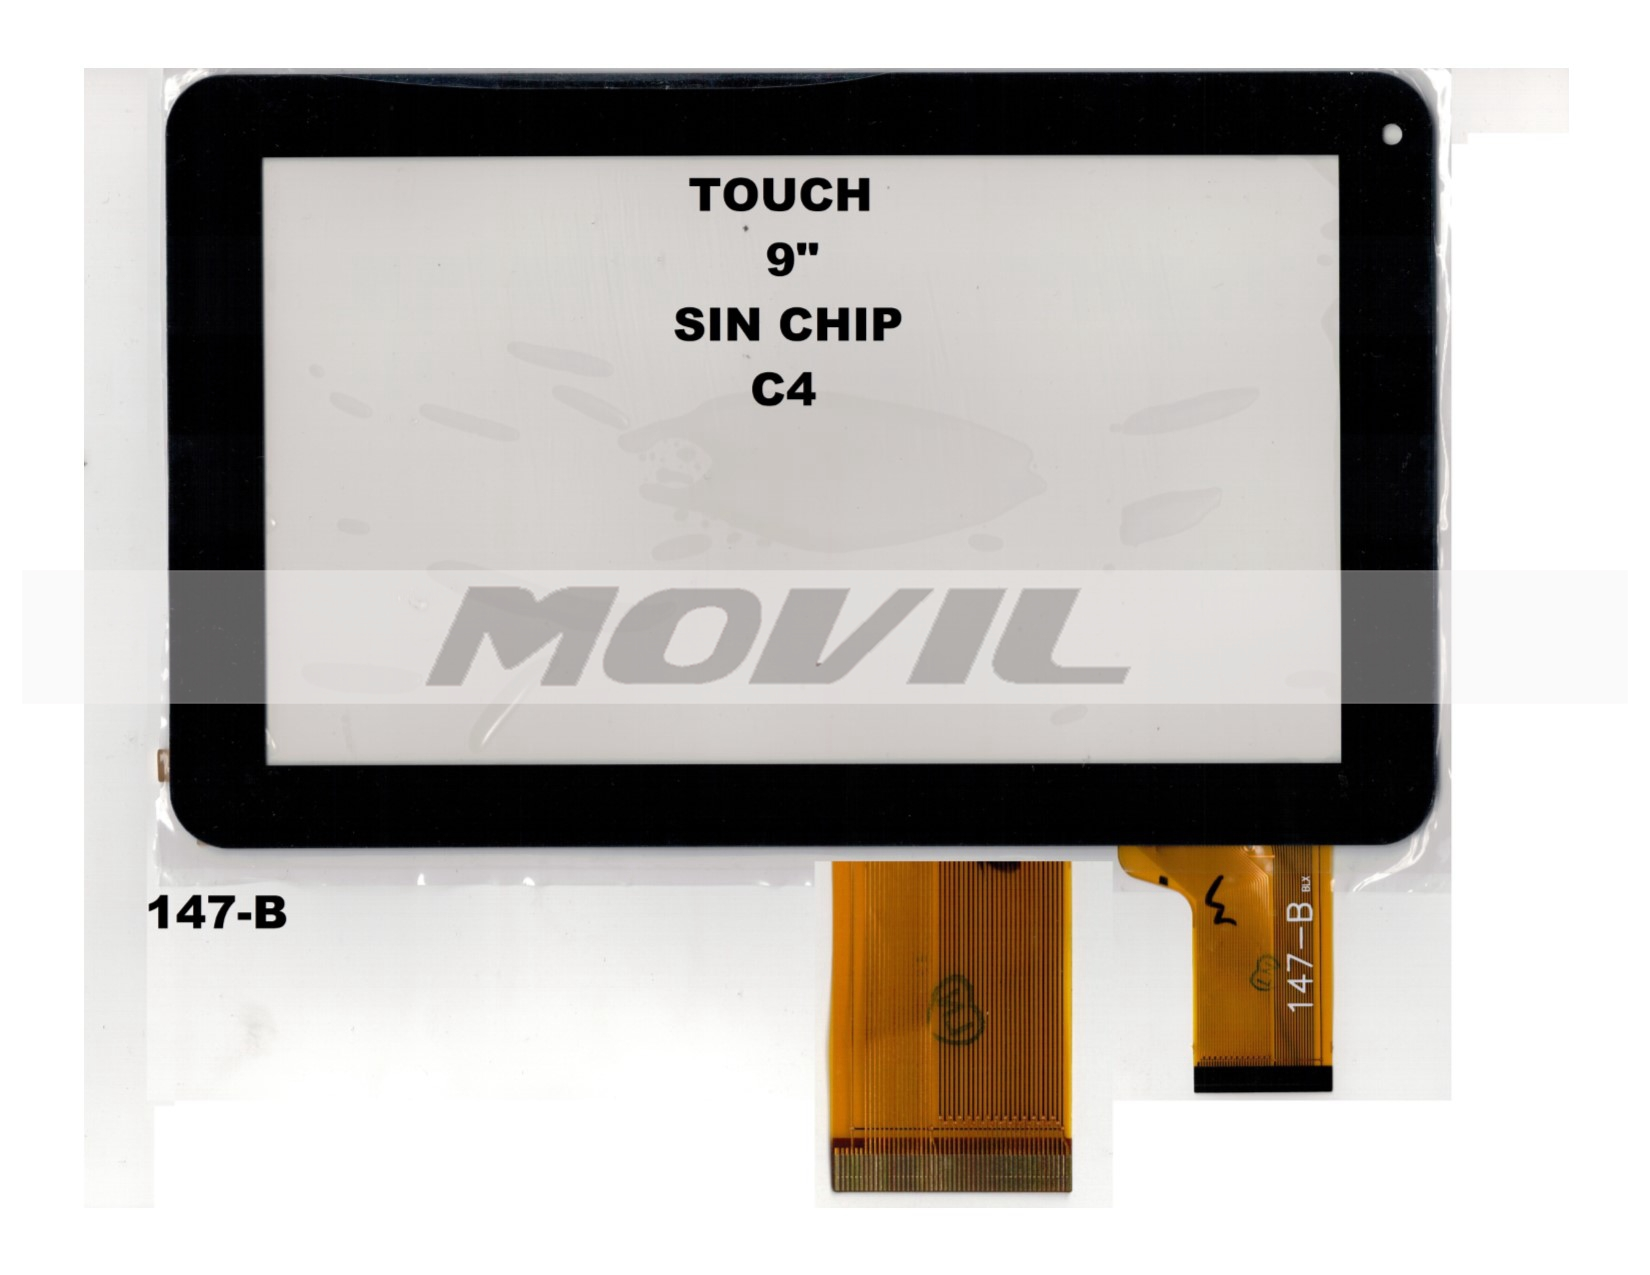 Touch tactil para tablet flex 9 inch SIN CHIP C4 147-B